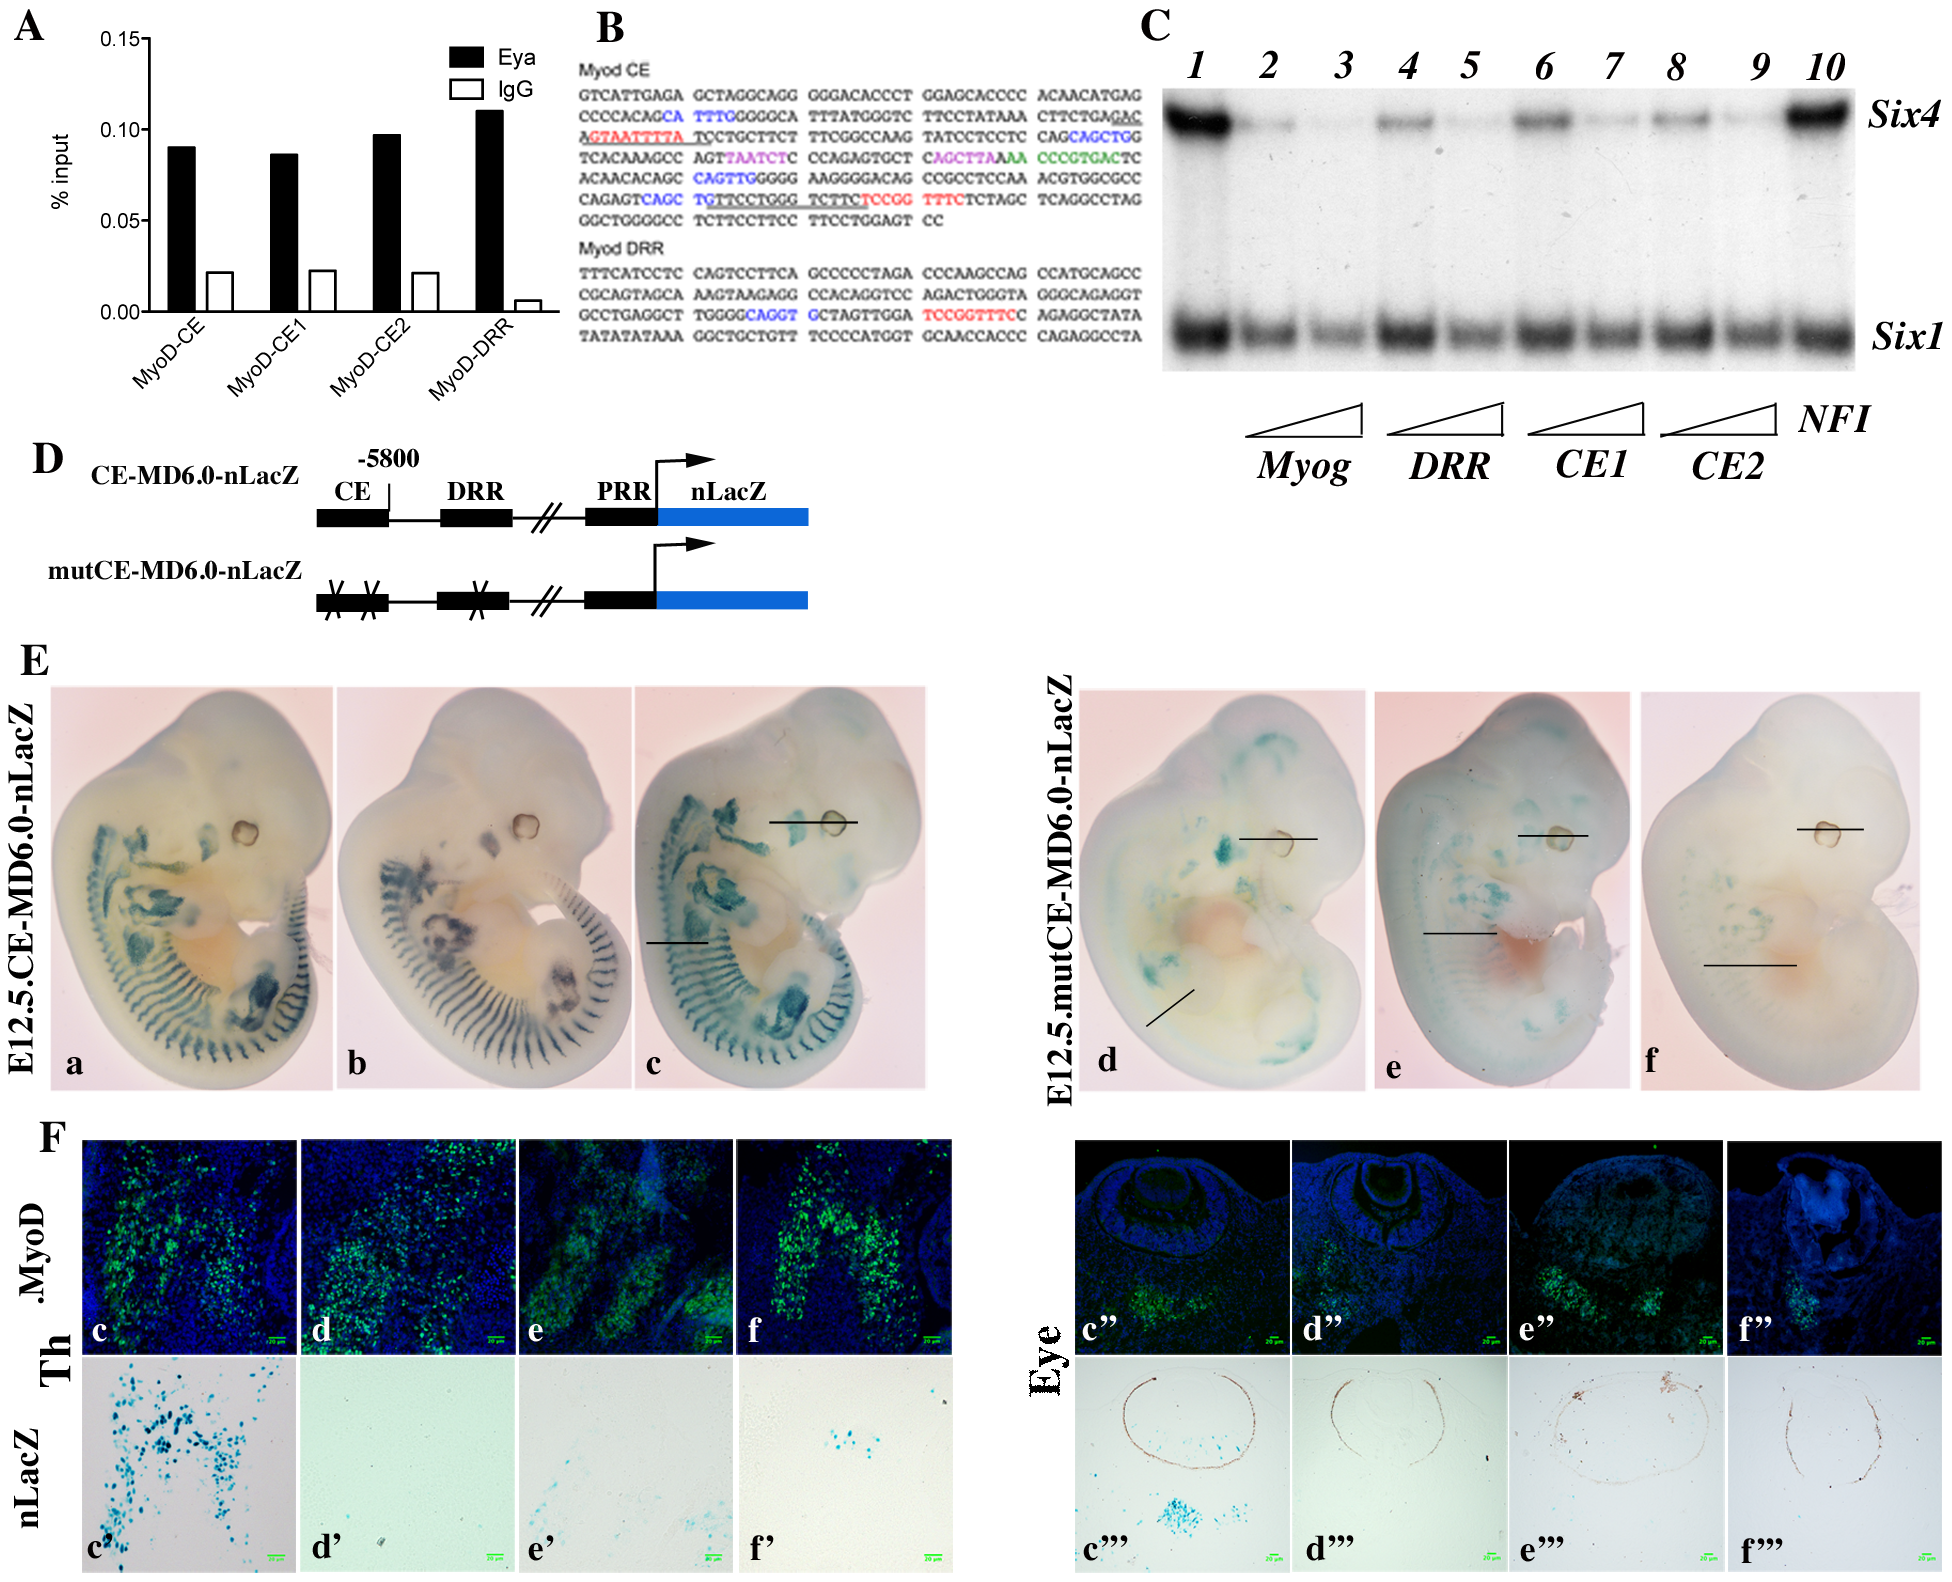 Six proteins are required for <i>Myod</i> expression in the mouse embryo.